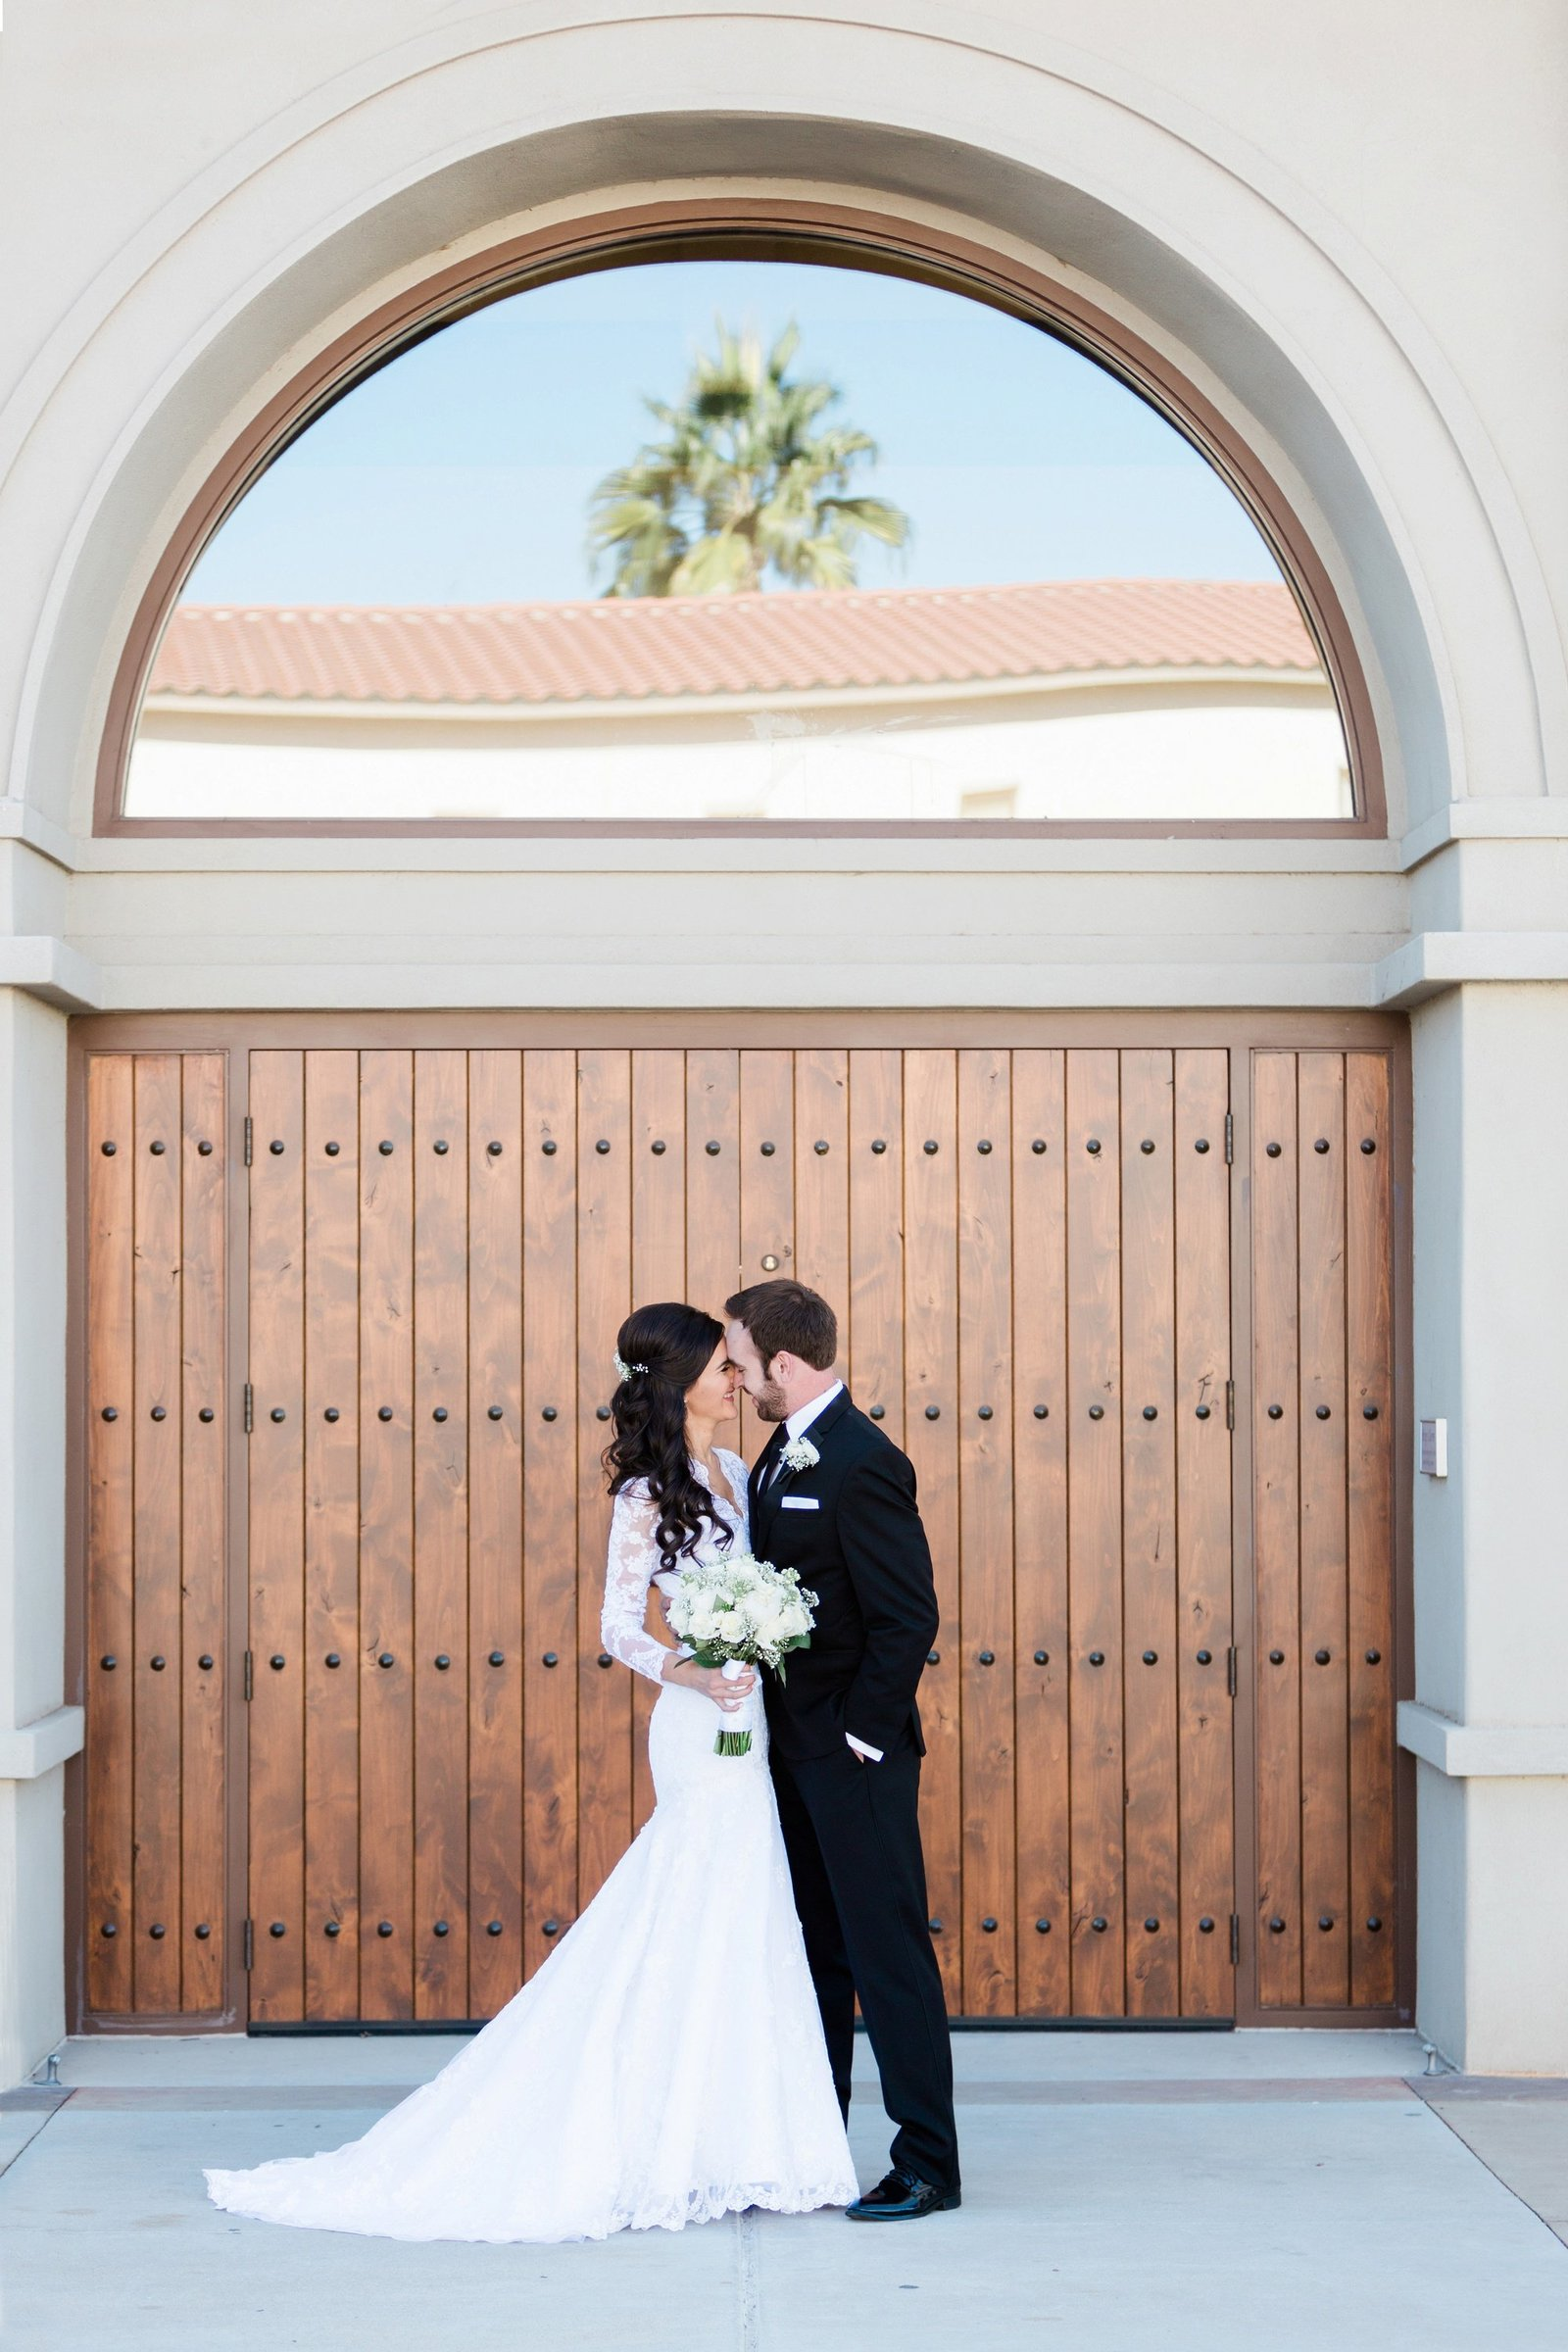 Bride + Groom Portraits Denver Colorado Springs CO Wedding Photographer Genevieve Hansen 033